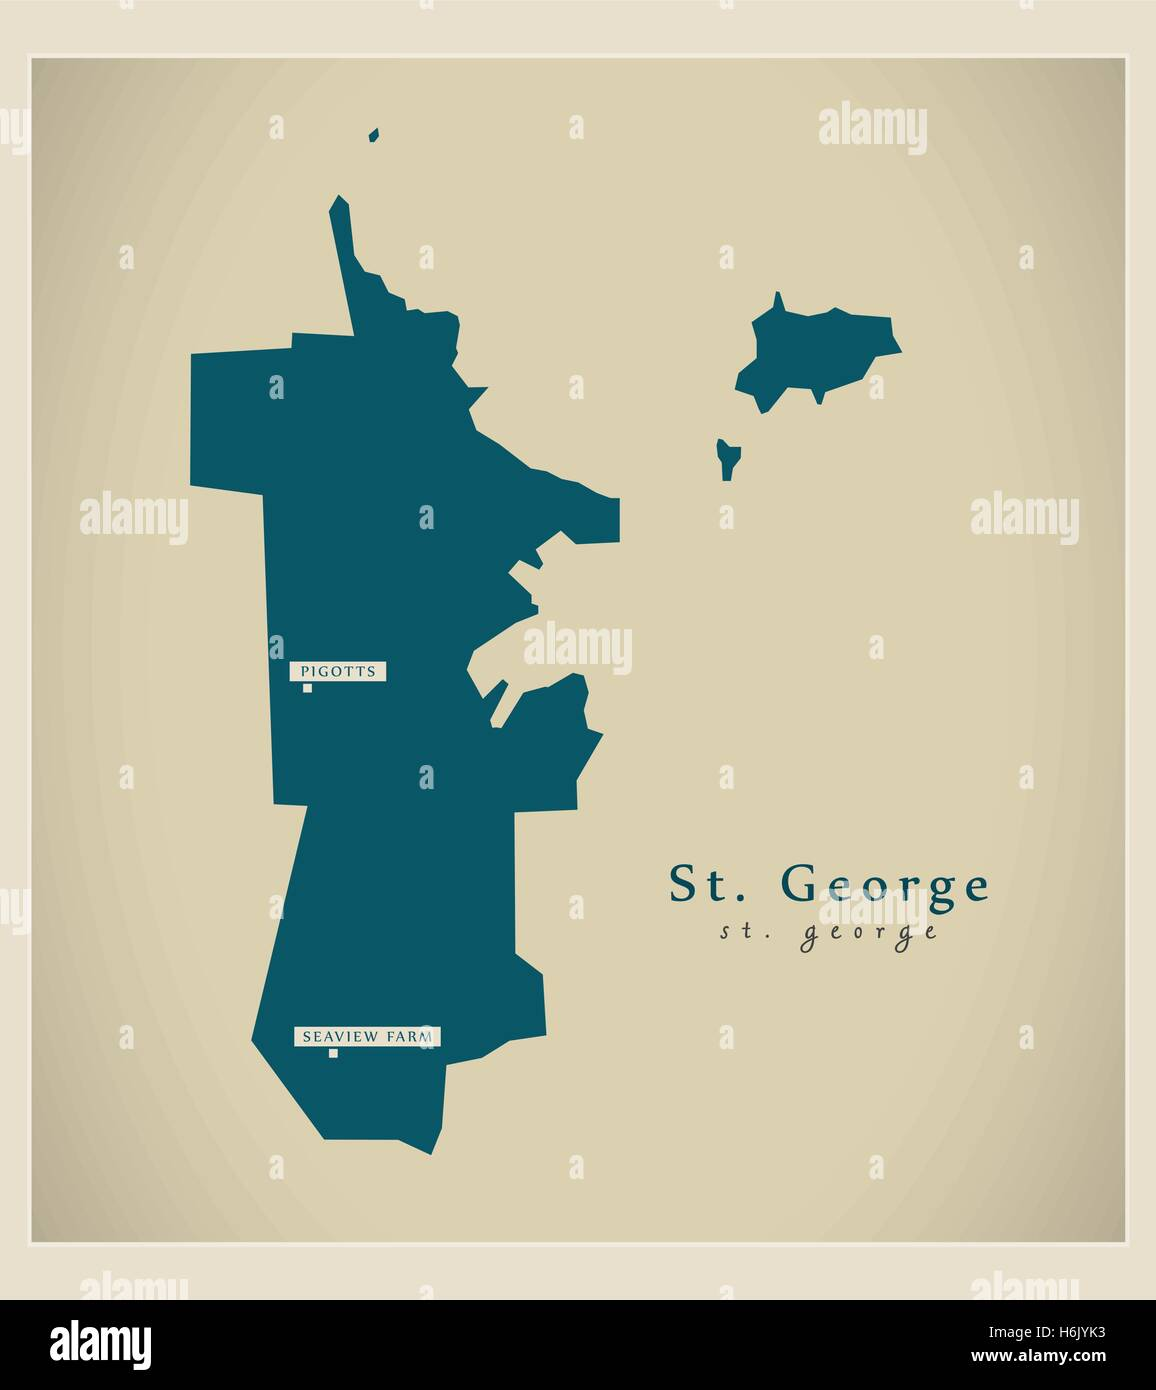 Modern Map - St. George AG - Stock Vector